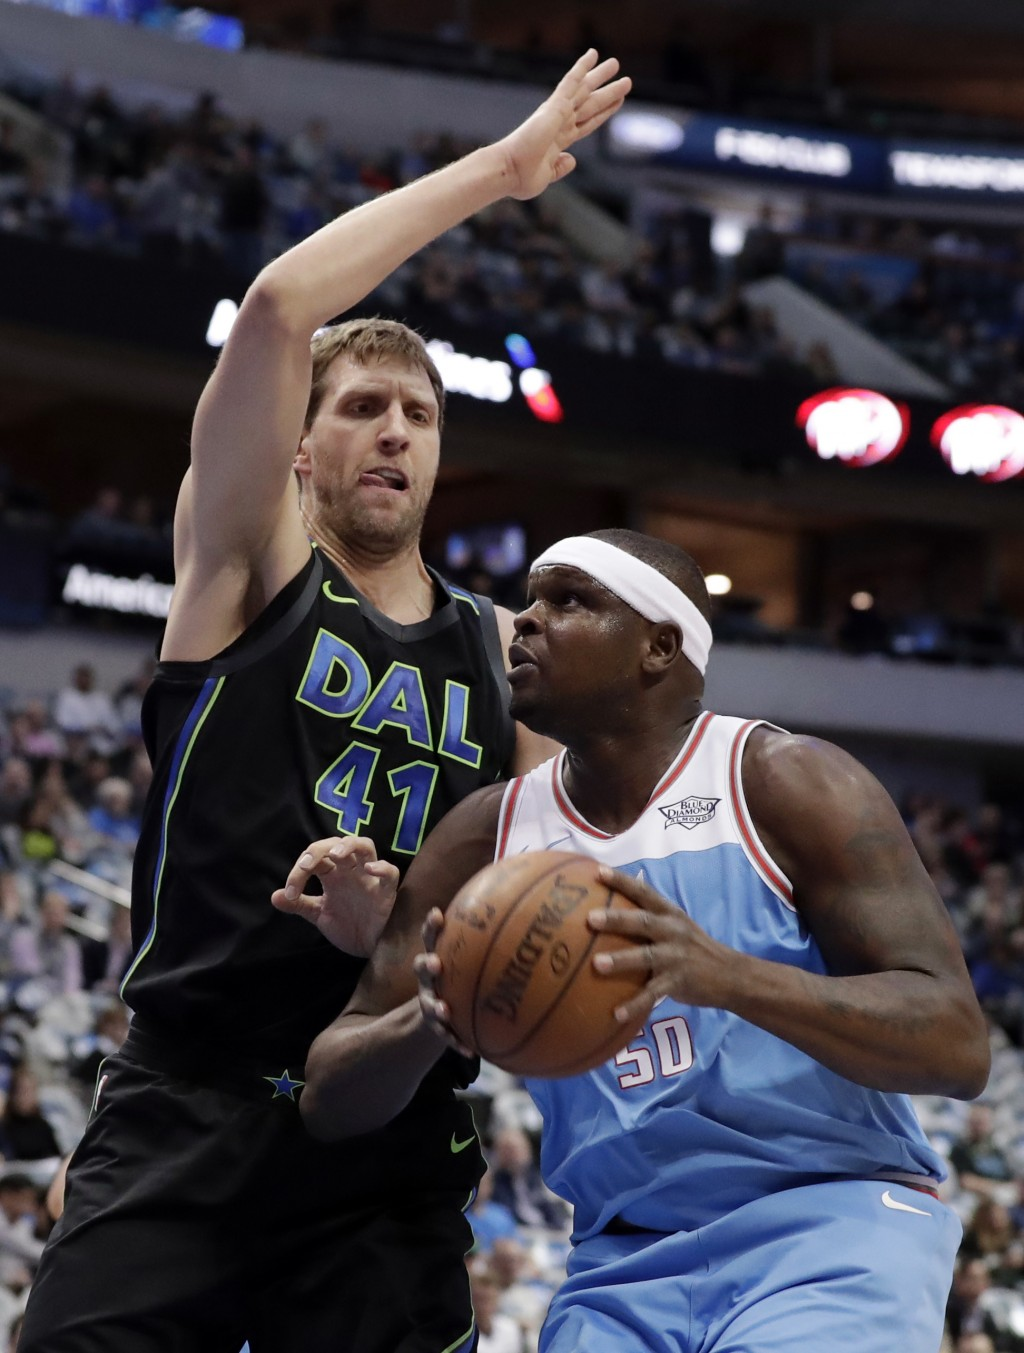 Dallas Mavericks forward Dirk Nowitzki (41) of Germany defends as Sacramento Kings forward Zach Randolph (50) works for a shot in the first half of an